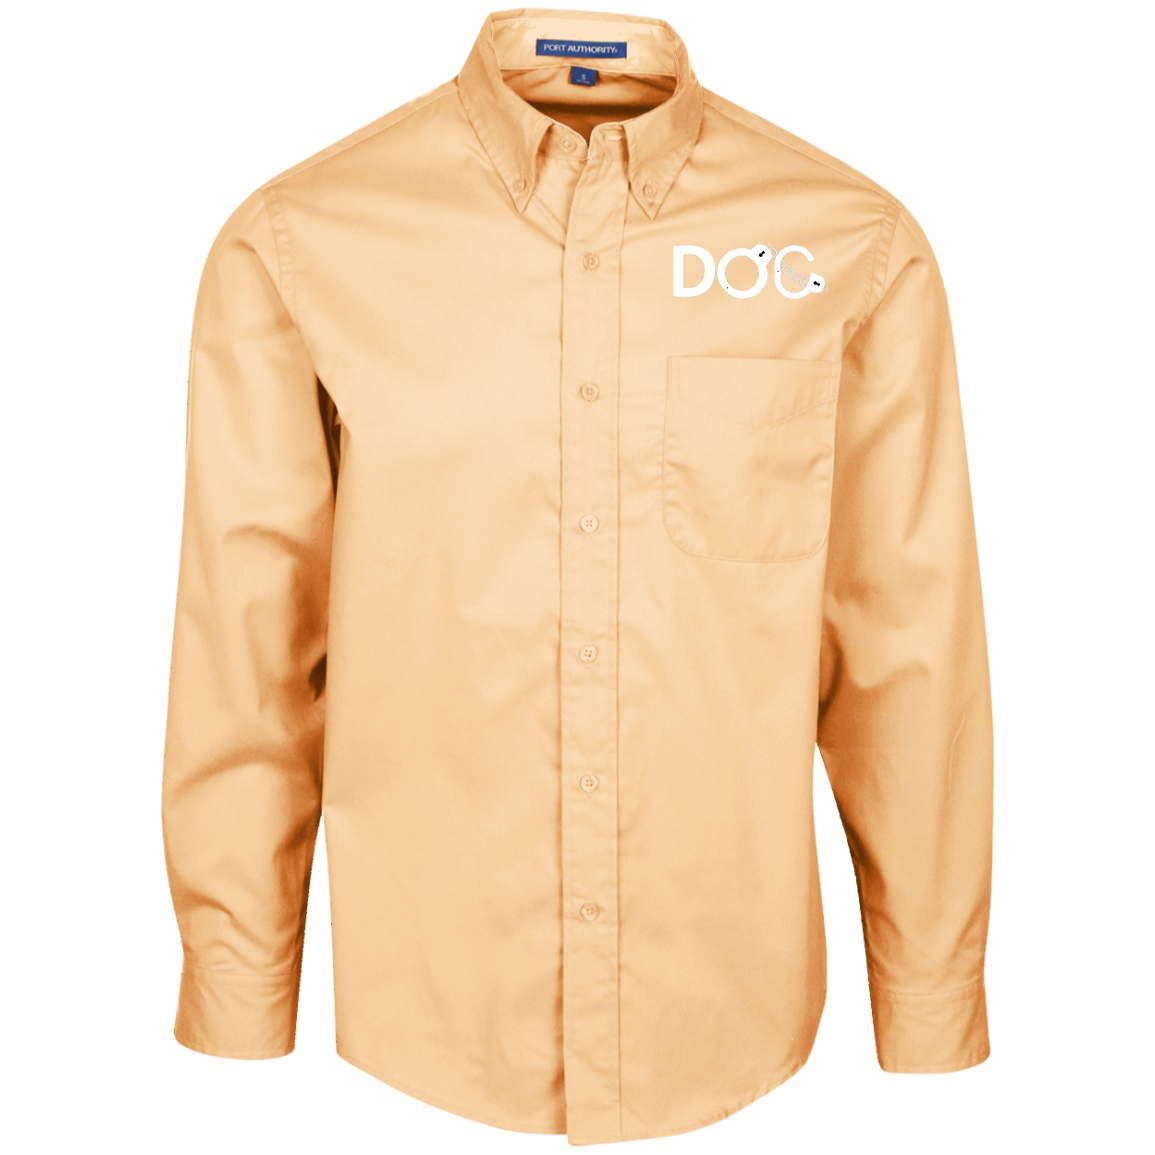 DOC Cuff Logo Designer Men's LS Dress Shirt Button Up Diamondz Original Clothing